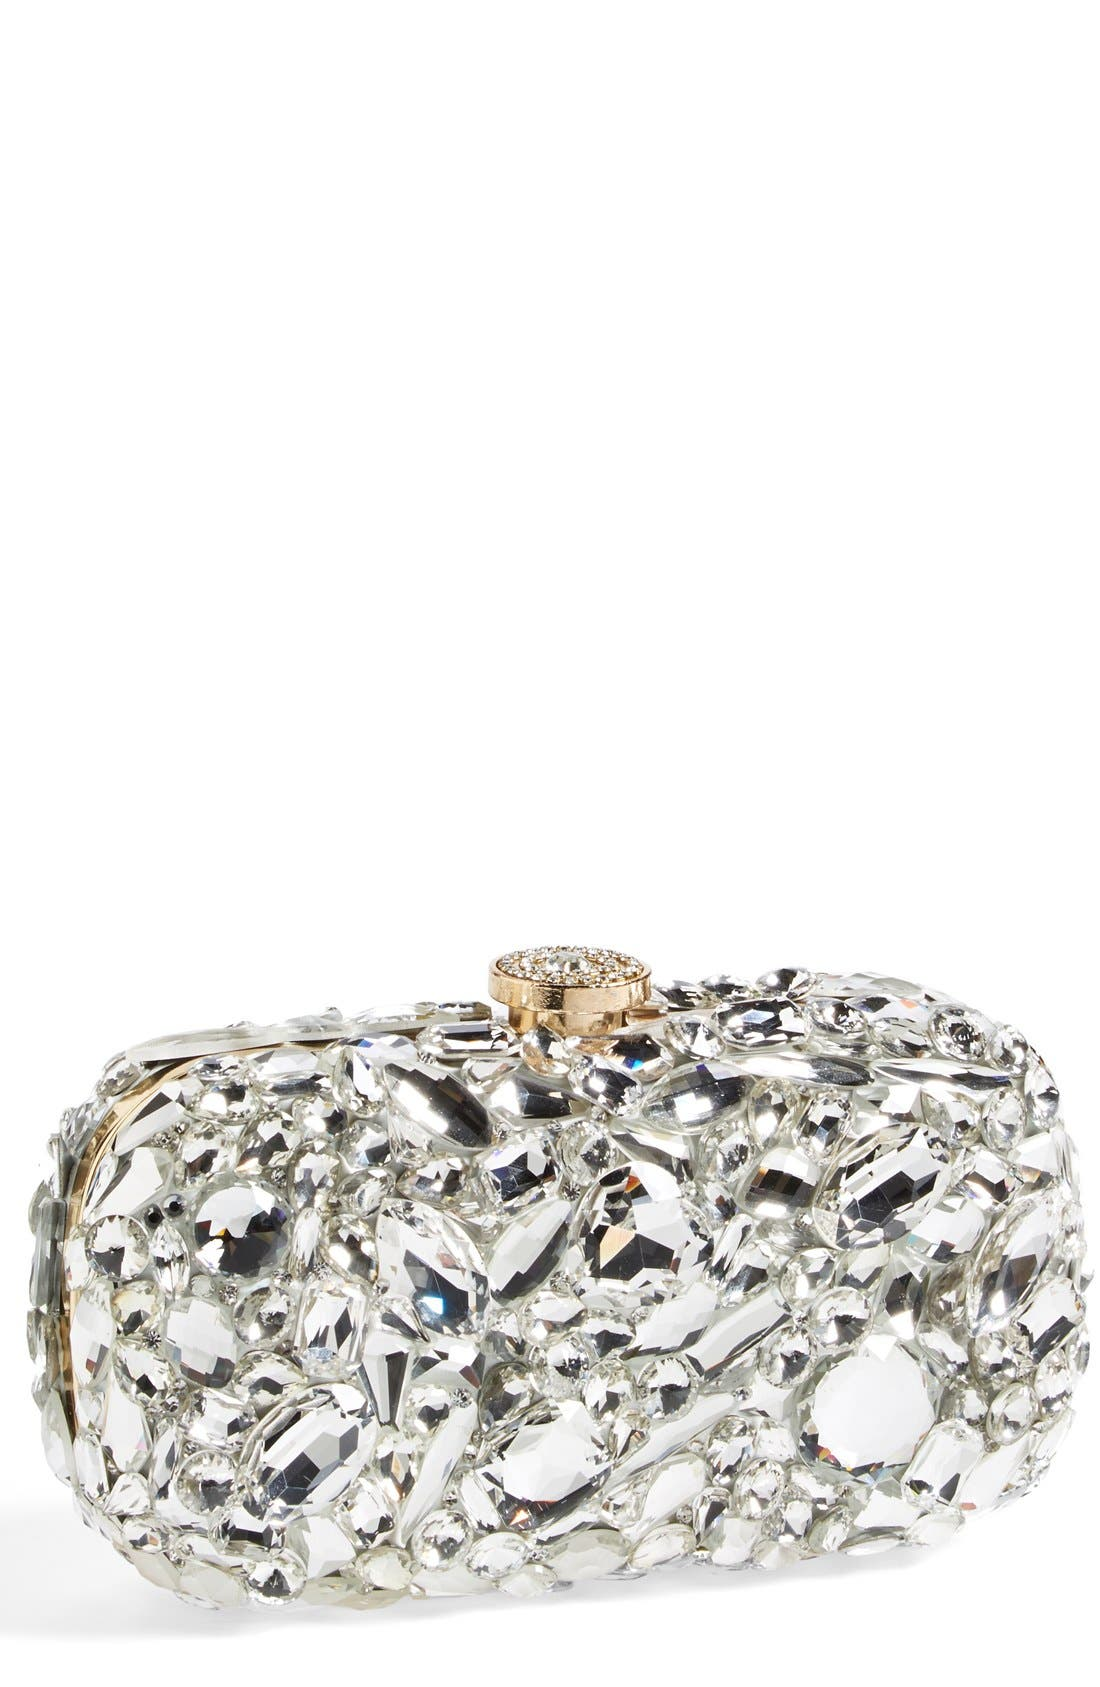 Alternate Image 1 Selected - Natasha Couture 'Ice Crystal' Minaudiere